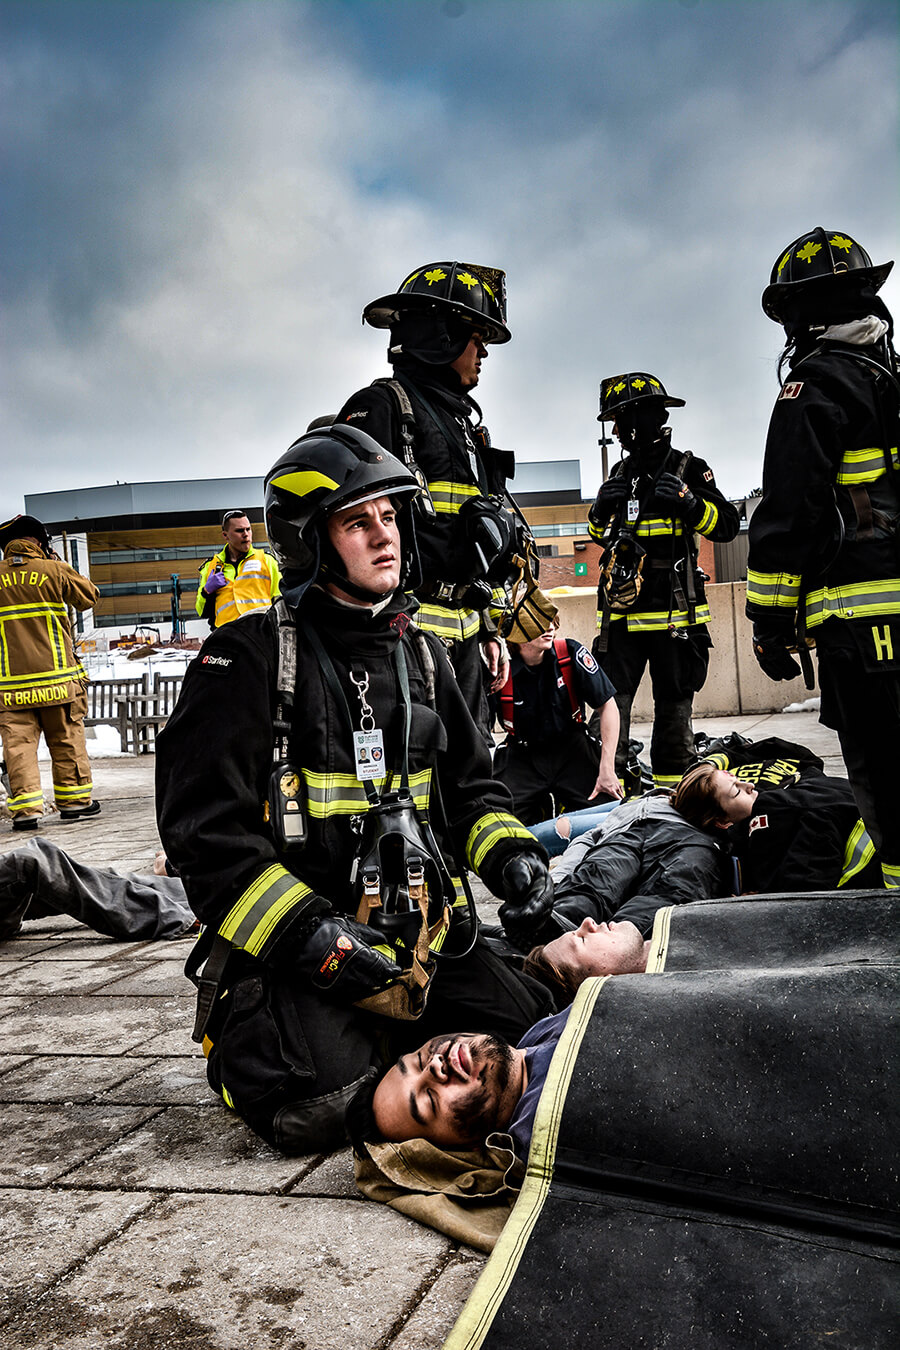 firefighter students simulation of helping injured beings